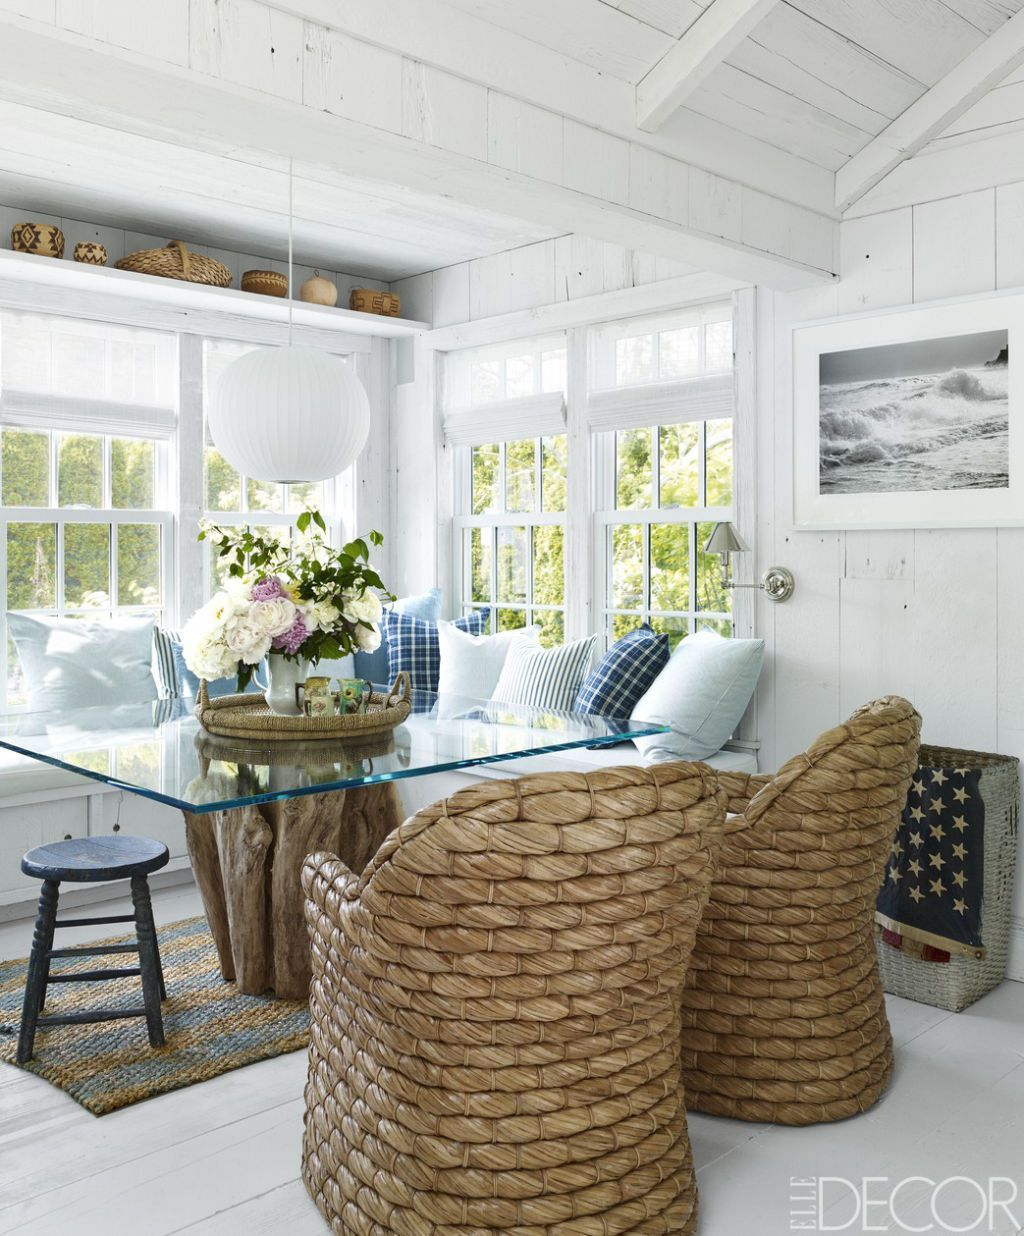 Elegant Beach House Decor: 20 Gorgeous Beach House Decor Ideas